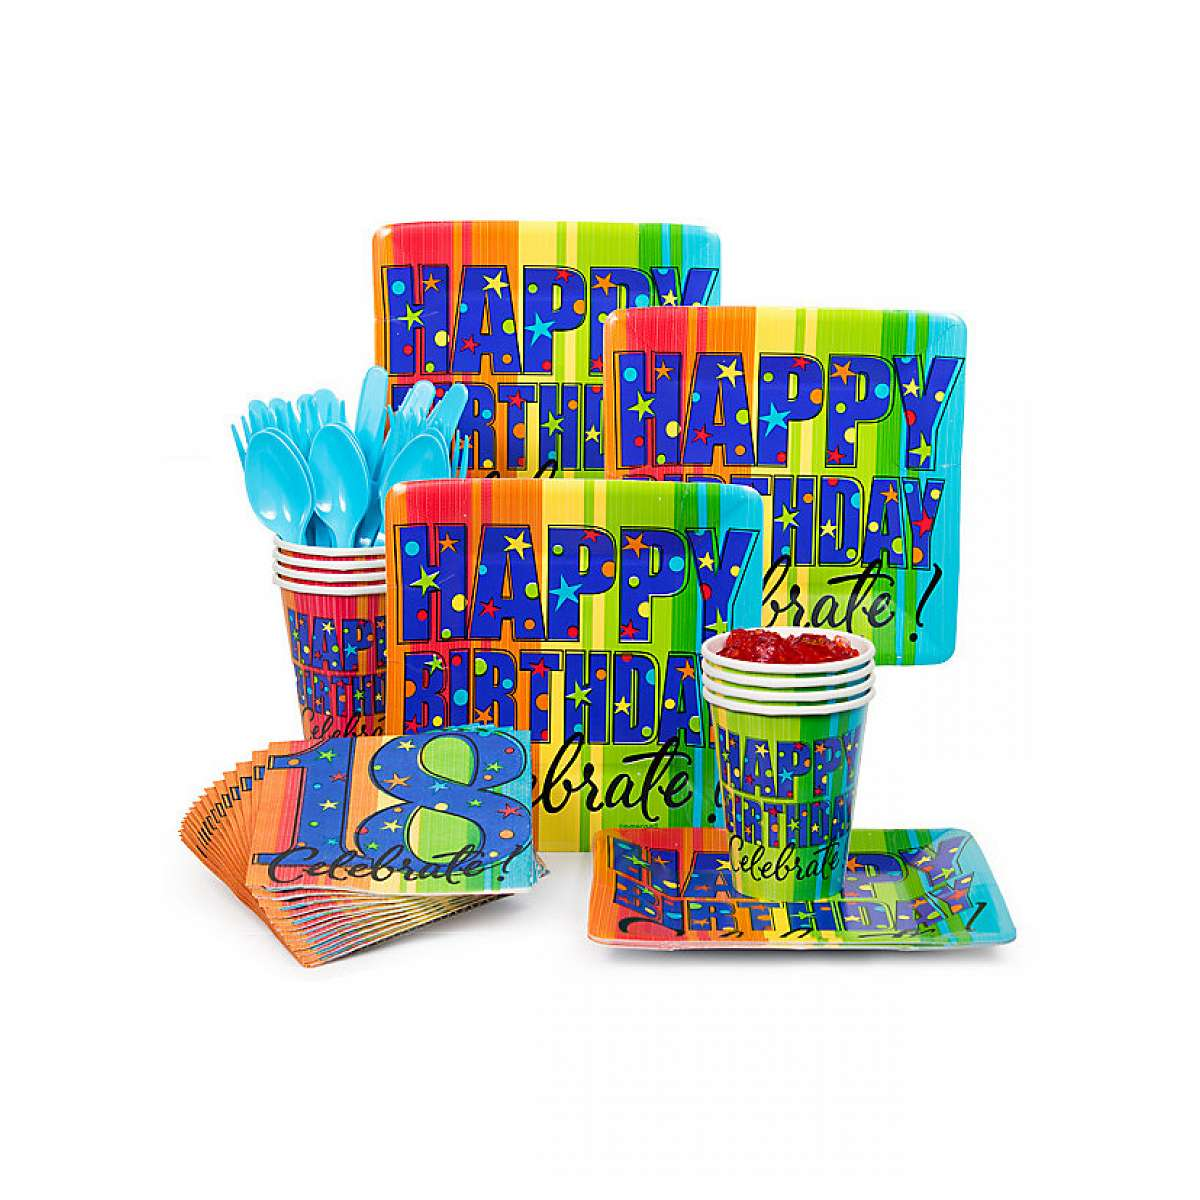 Costume Supercenter Bbkit106 A Year To Celebrate 18th Birthday Standard Kit BBKIT105